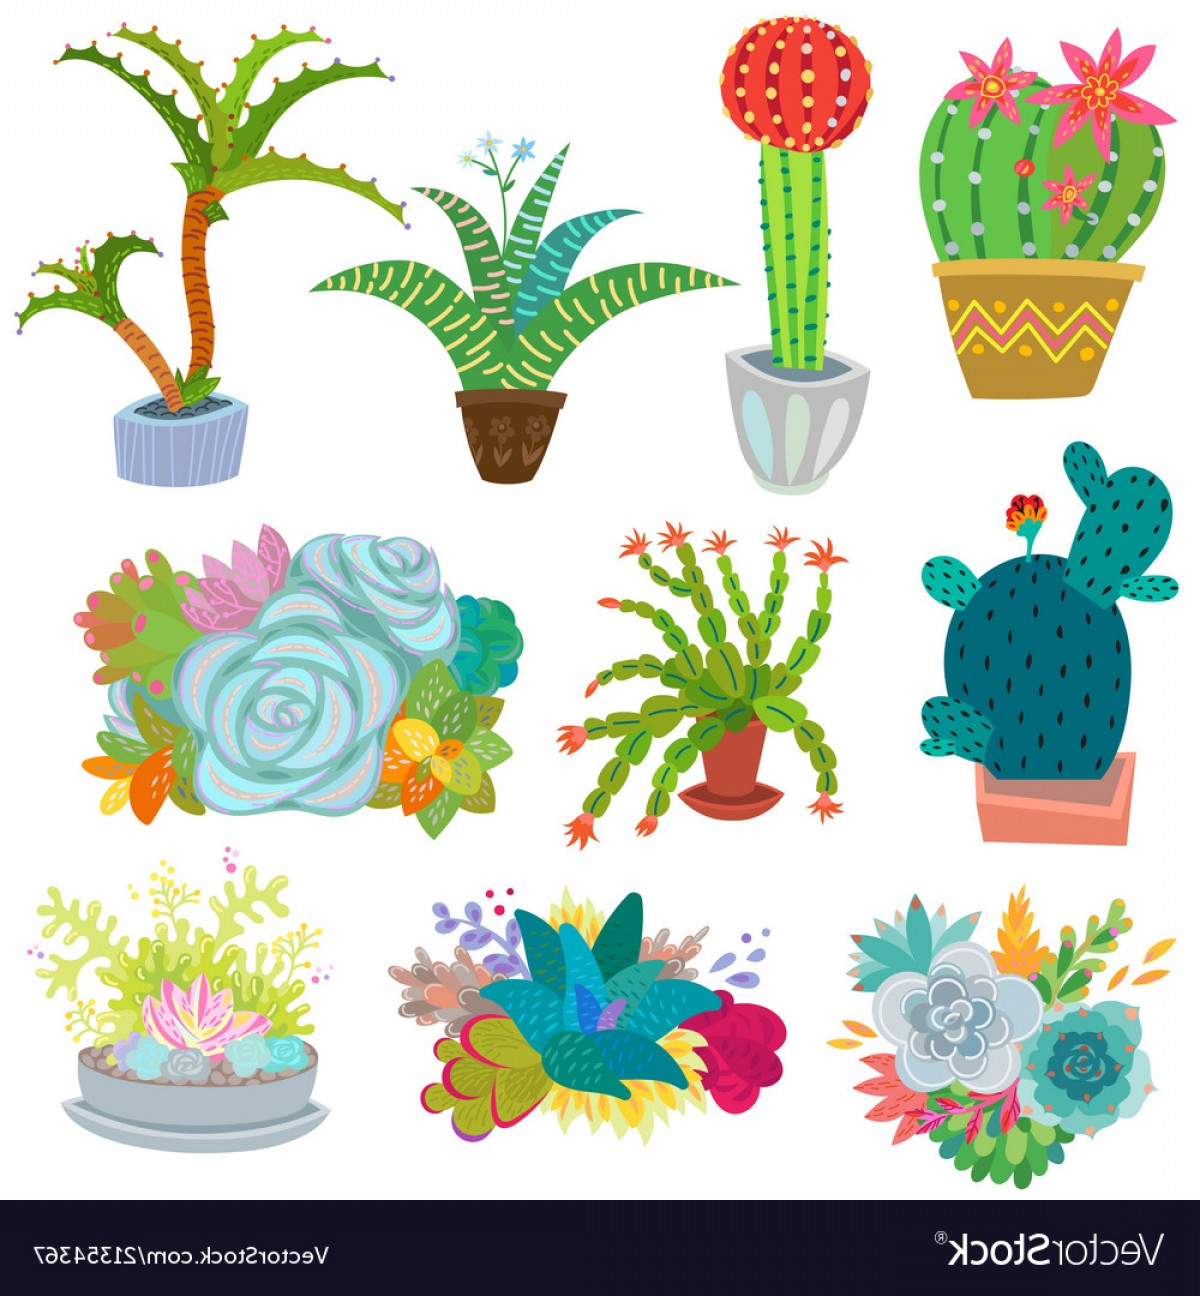 Potted Cactus Plant Vector: Cactus Botanical Cacti Potted Cute Vector